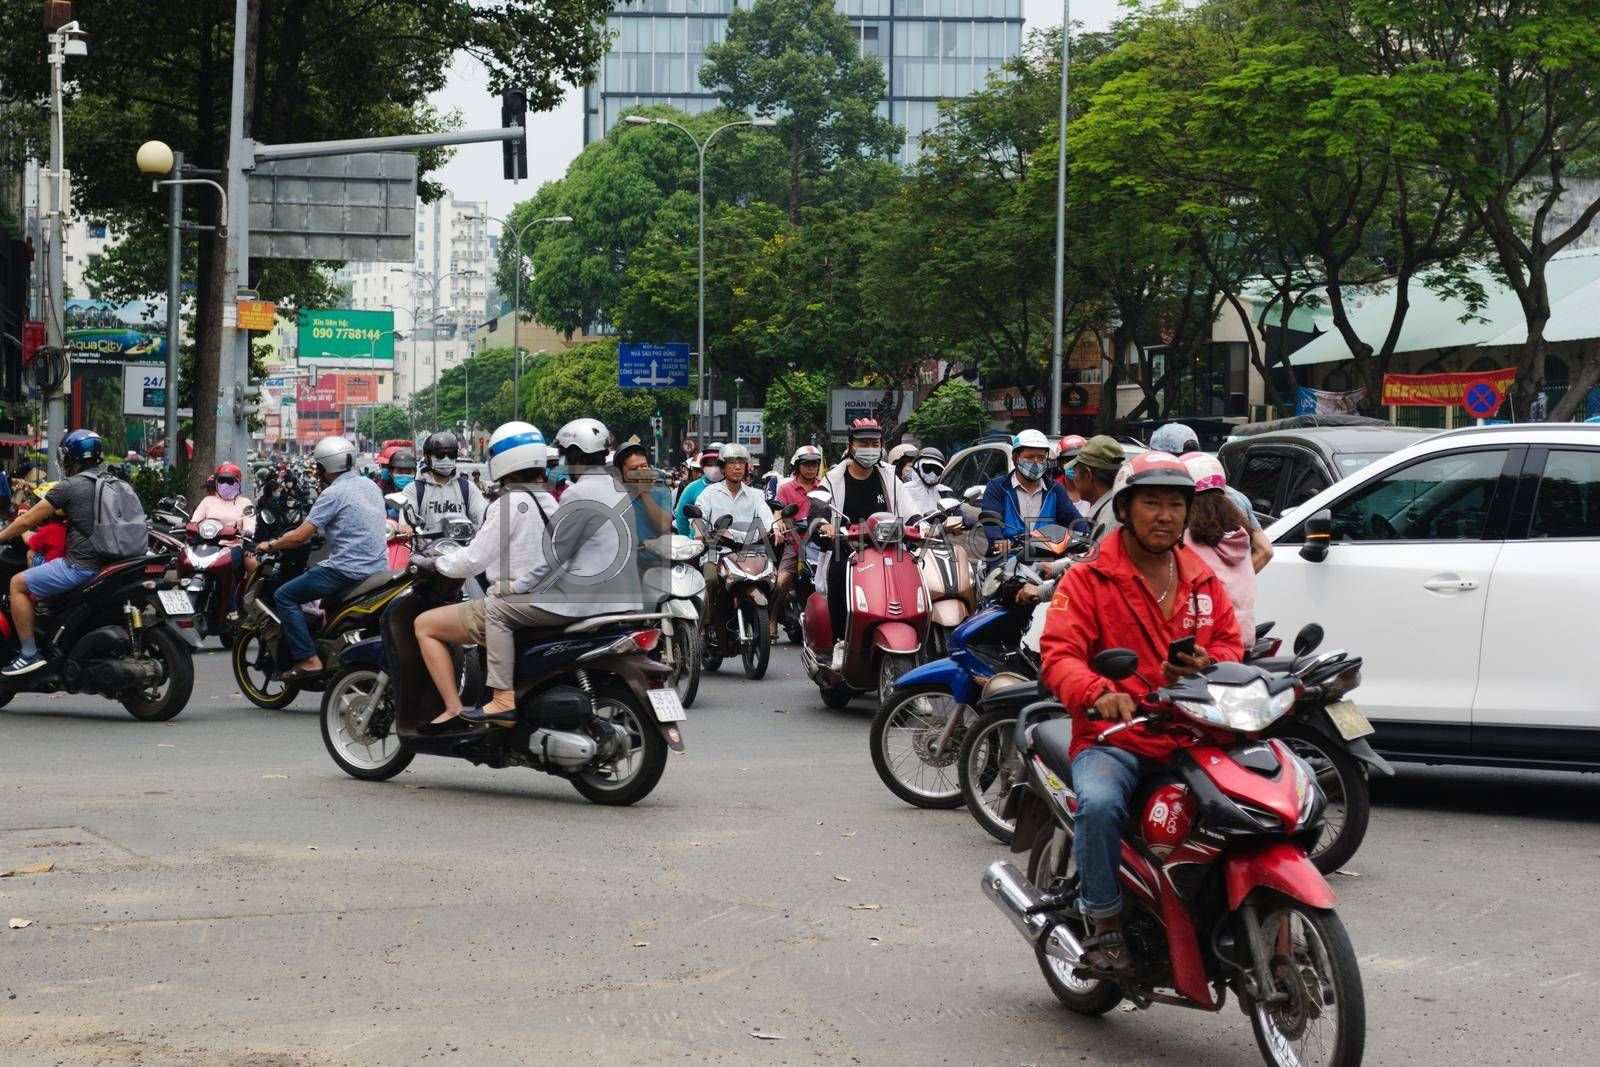 Royalty free image of 2019-11-10 / Ho Chi Minh City, Vietnam - Urban scene in rush hour. Motorcycles flood the chaotic traffic flow of the city. by hernan_hyper